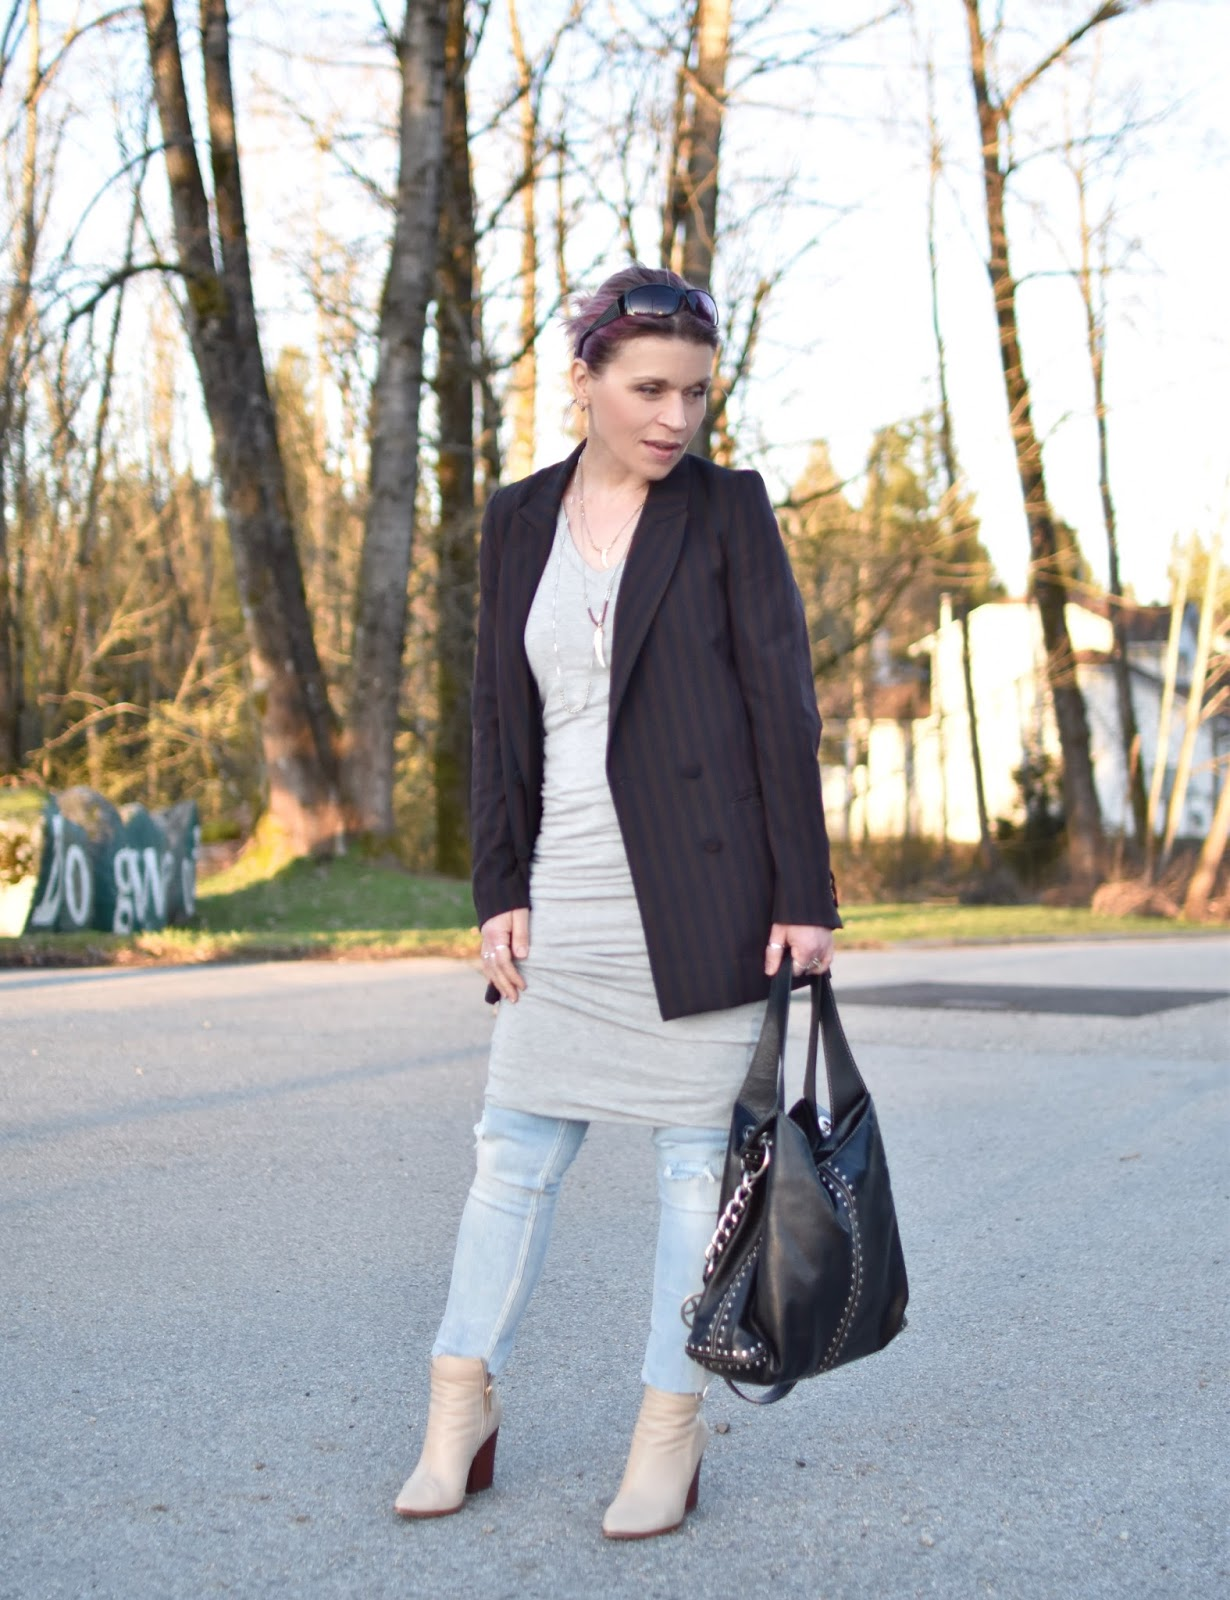 Monika Faulkner outfit inspiration - styling a jersey tank dress over distressed skinny jeans, with a slouchy suit jacket and ivory booties